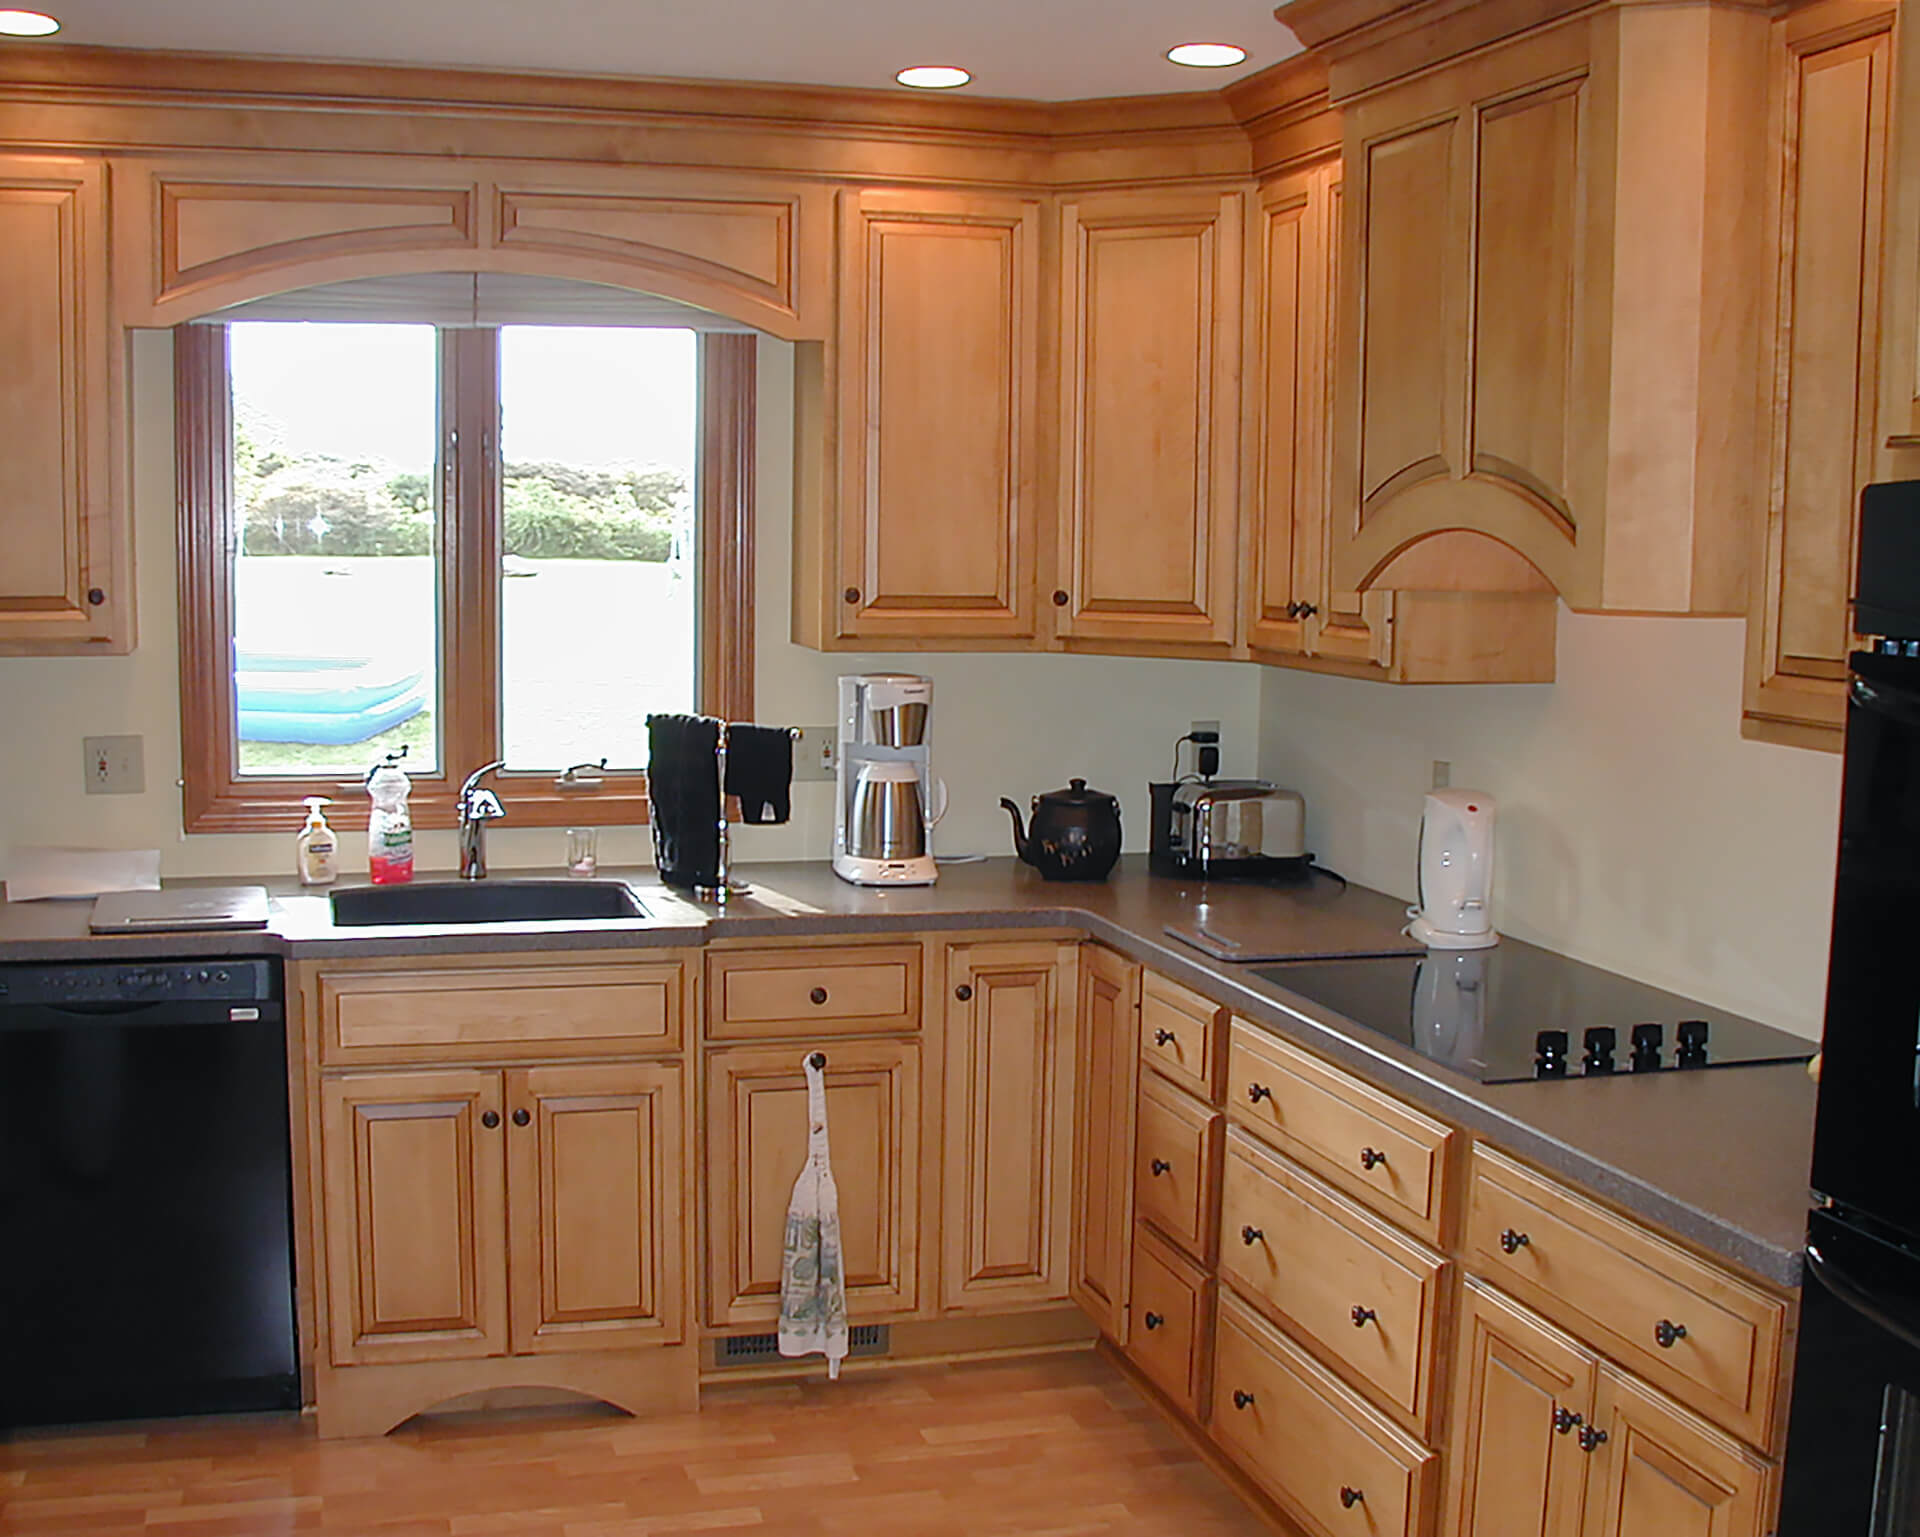 remodel works bath & kitchen natural maple cabinets kinetic and gallery photo